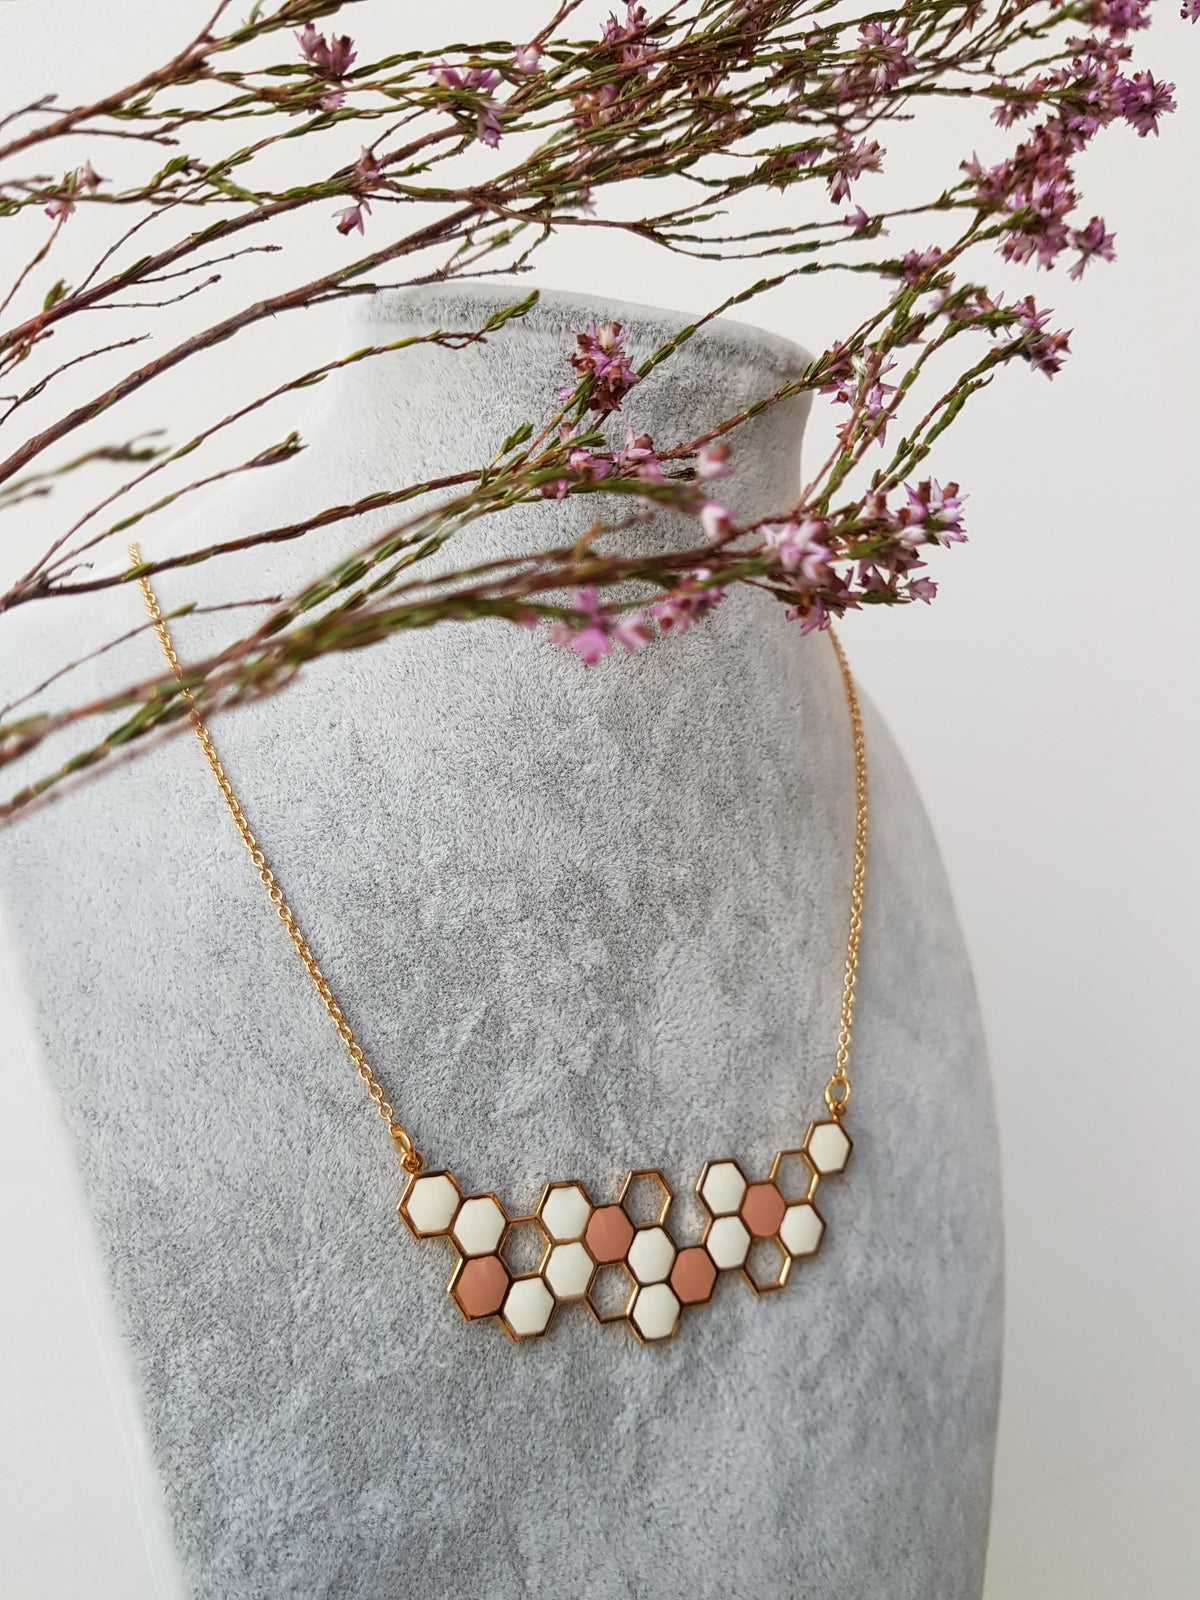 (Restocked) Honey Comb Brass Necklace with 18K Gold Plating (Pink & White)